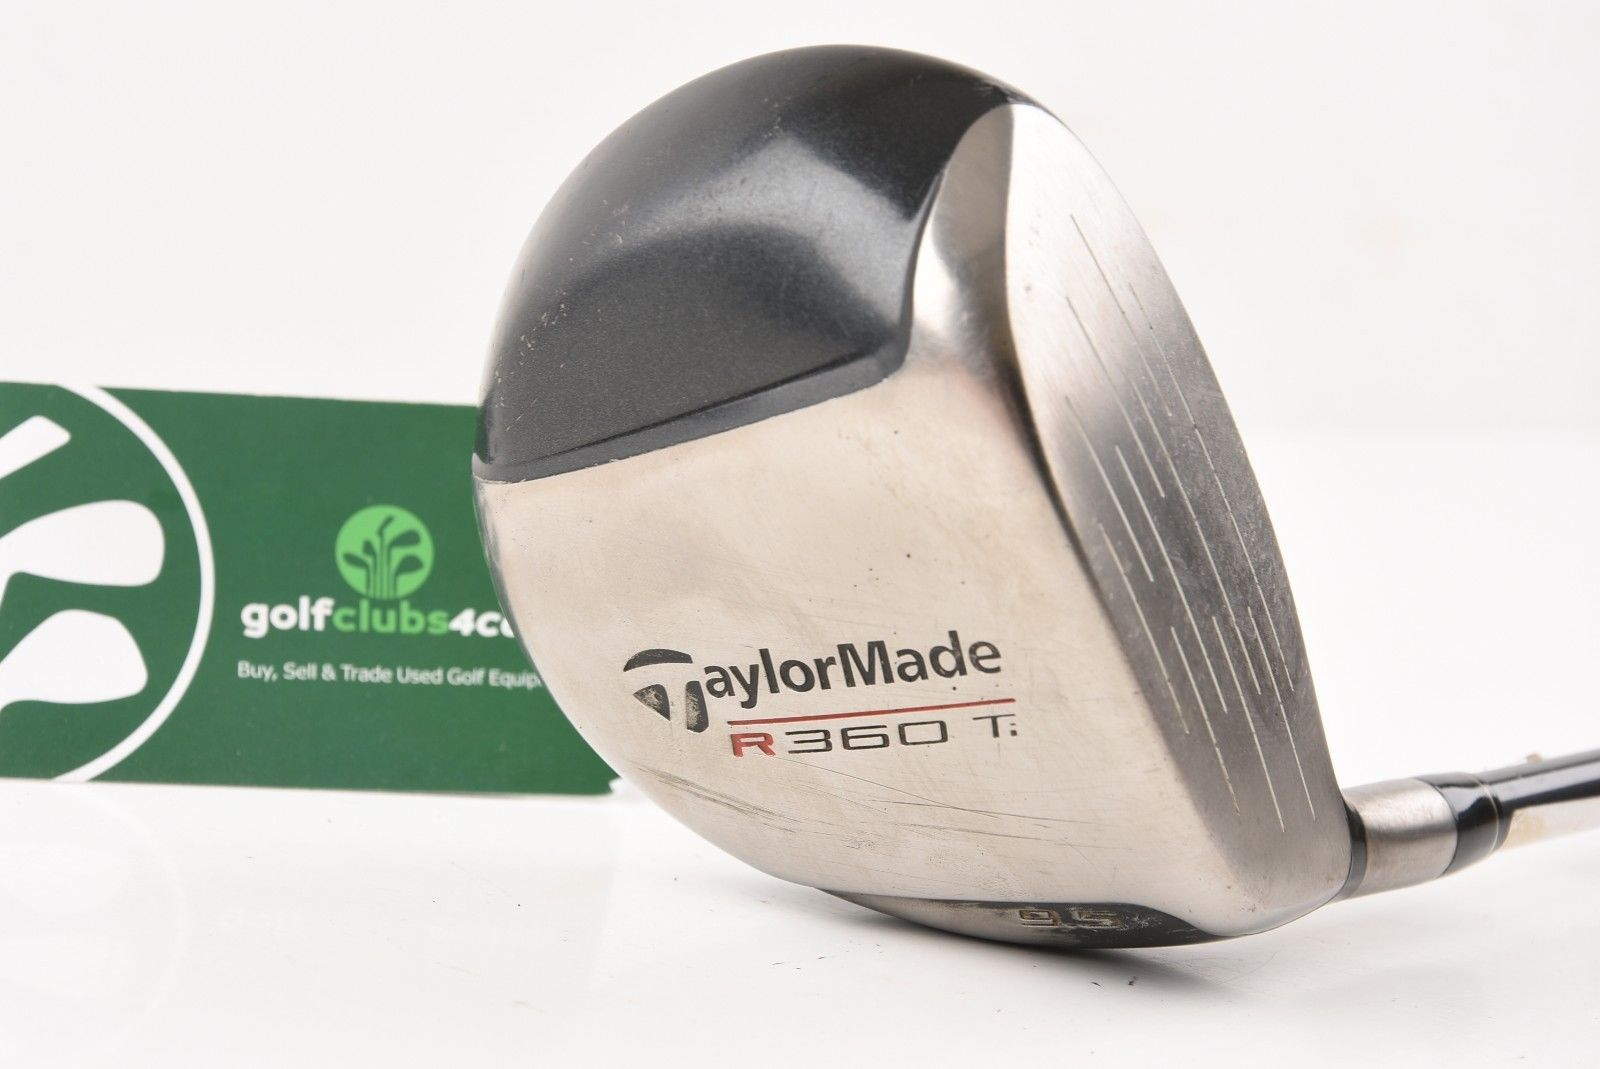 TAYLORMADE R360 TI WINDOWS 8 DRIVERS DOWNLOAD